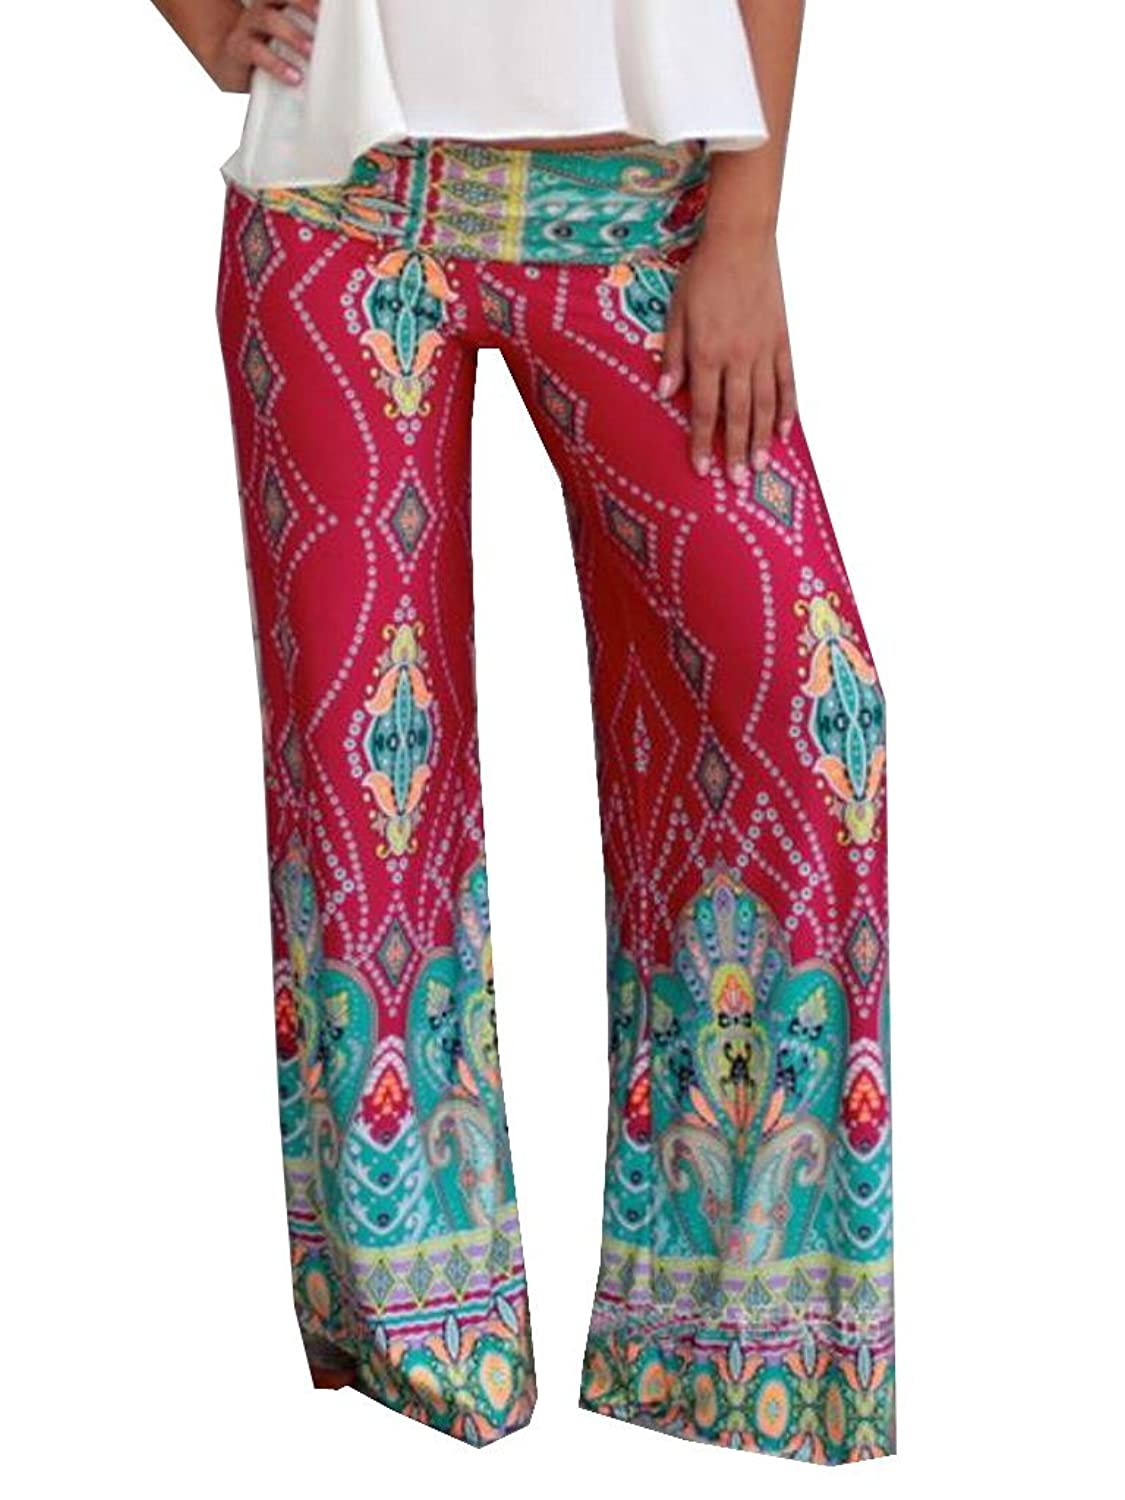 NQ Women's Straight Loose Multicolored Palazzo Wide Leg Pants 85%OFF